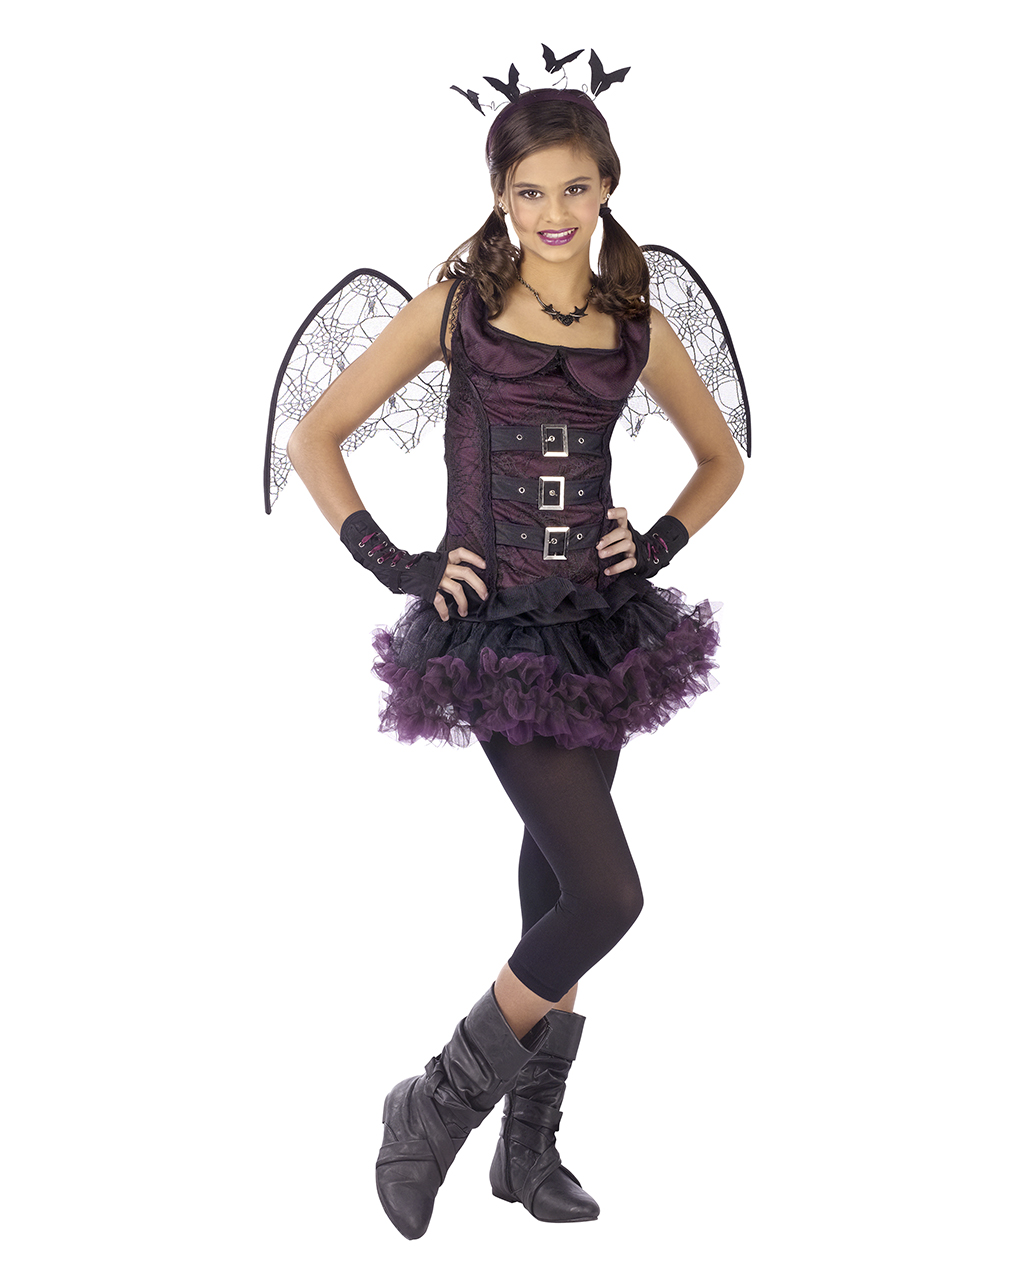 spider bat costume teen violet | naughty halloween costume for teens